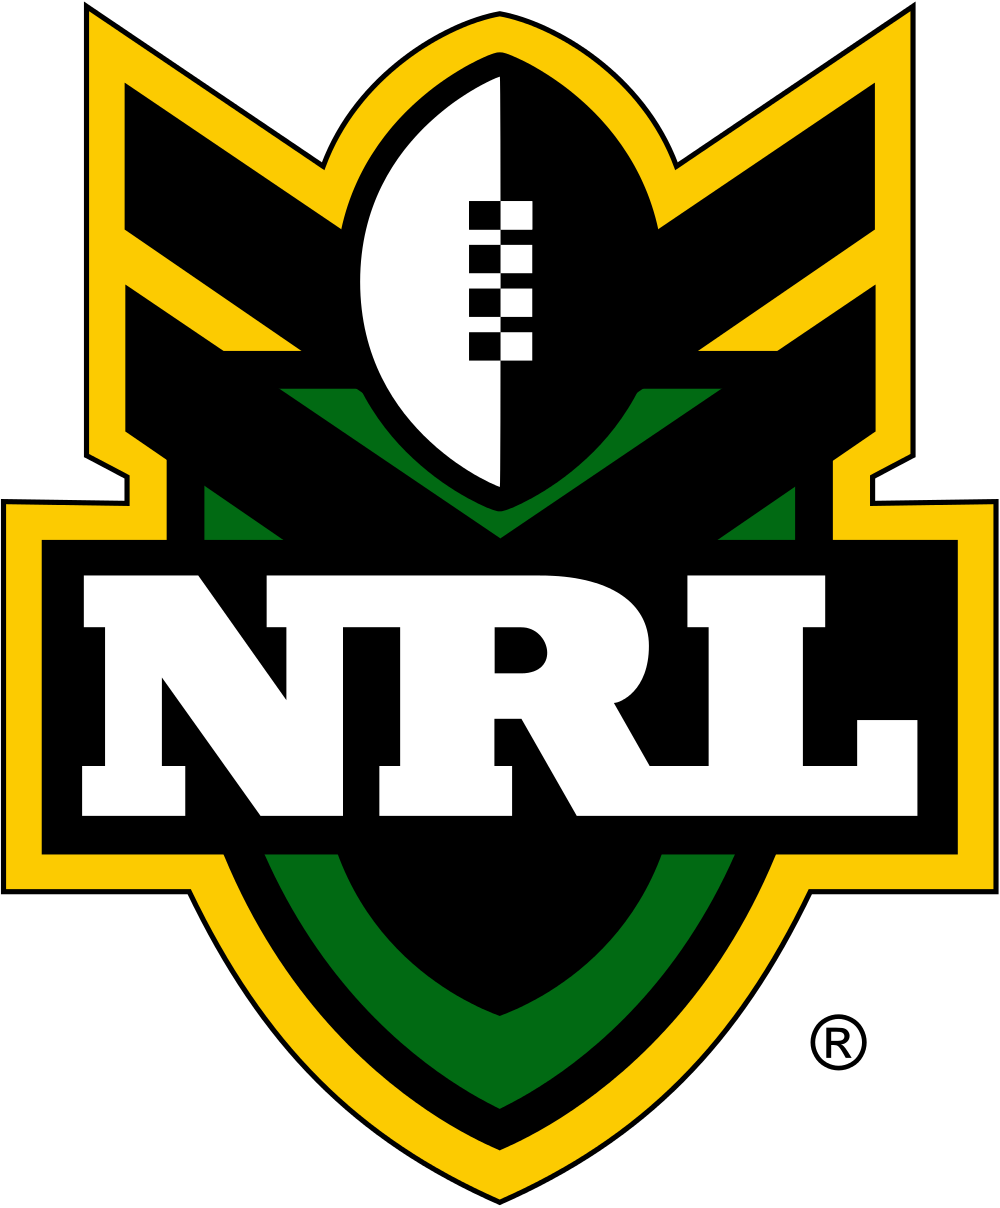 National Rugby League - Logopedia, the logo and branding site